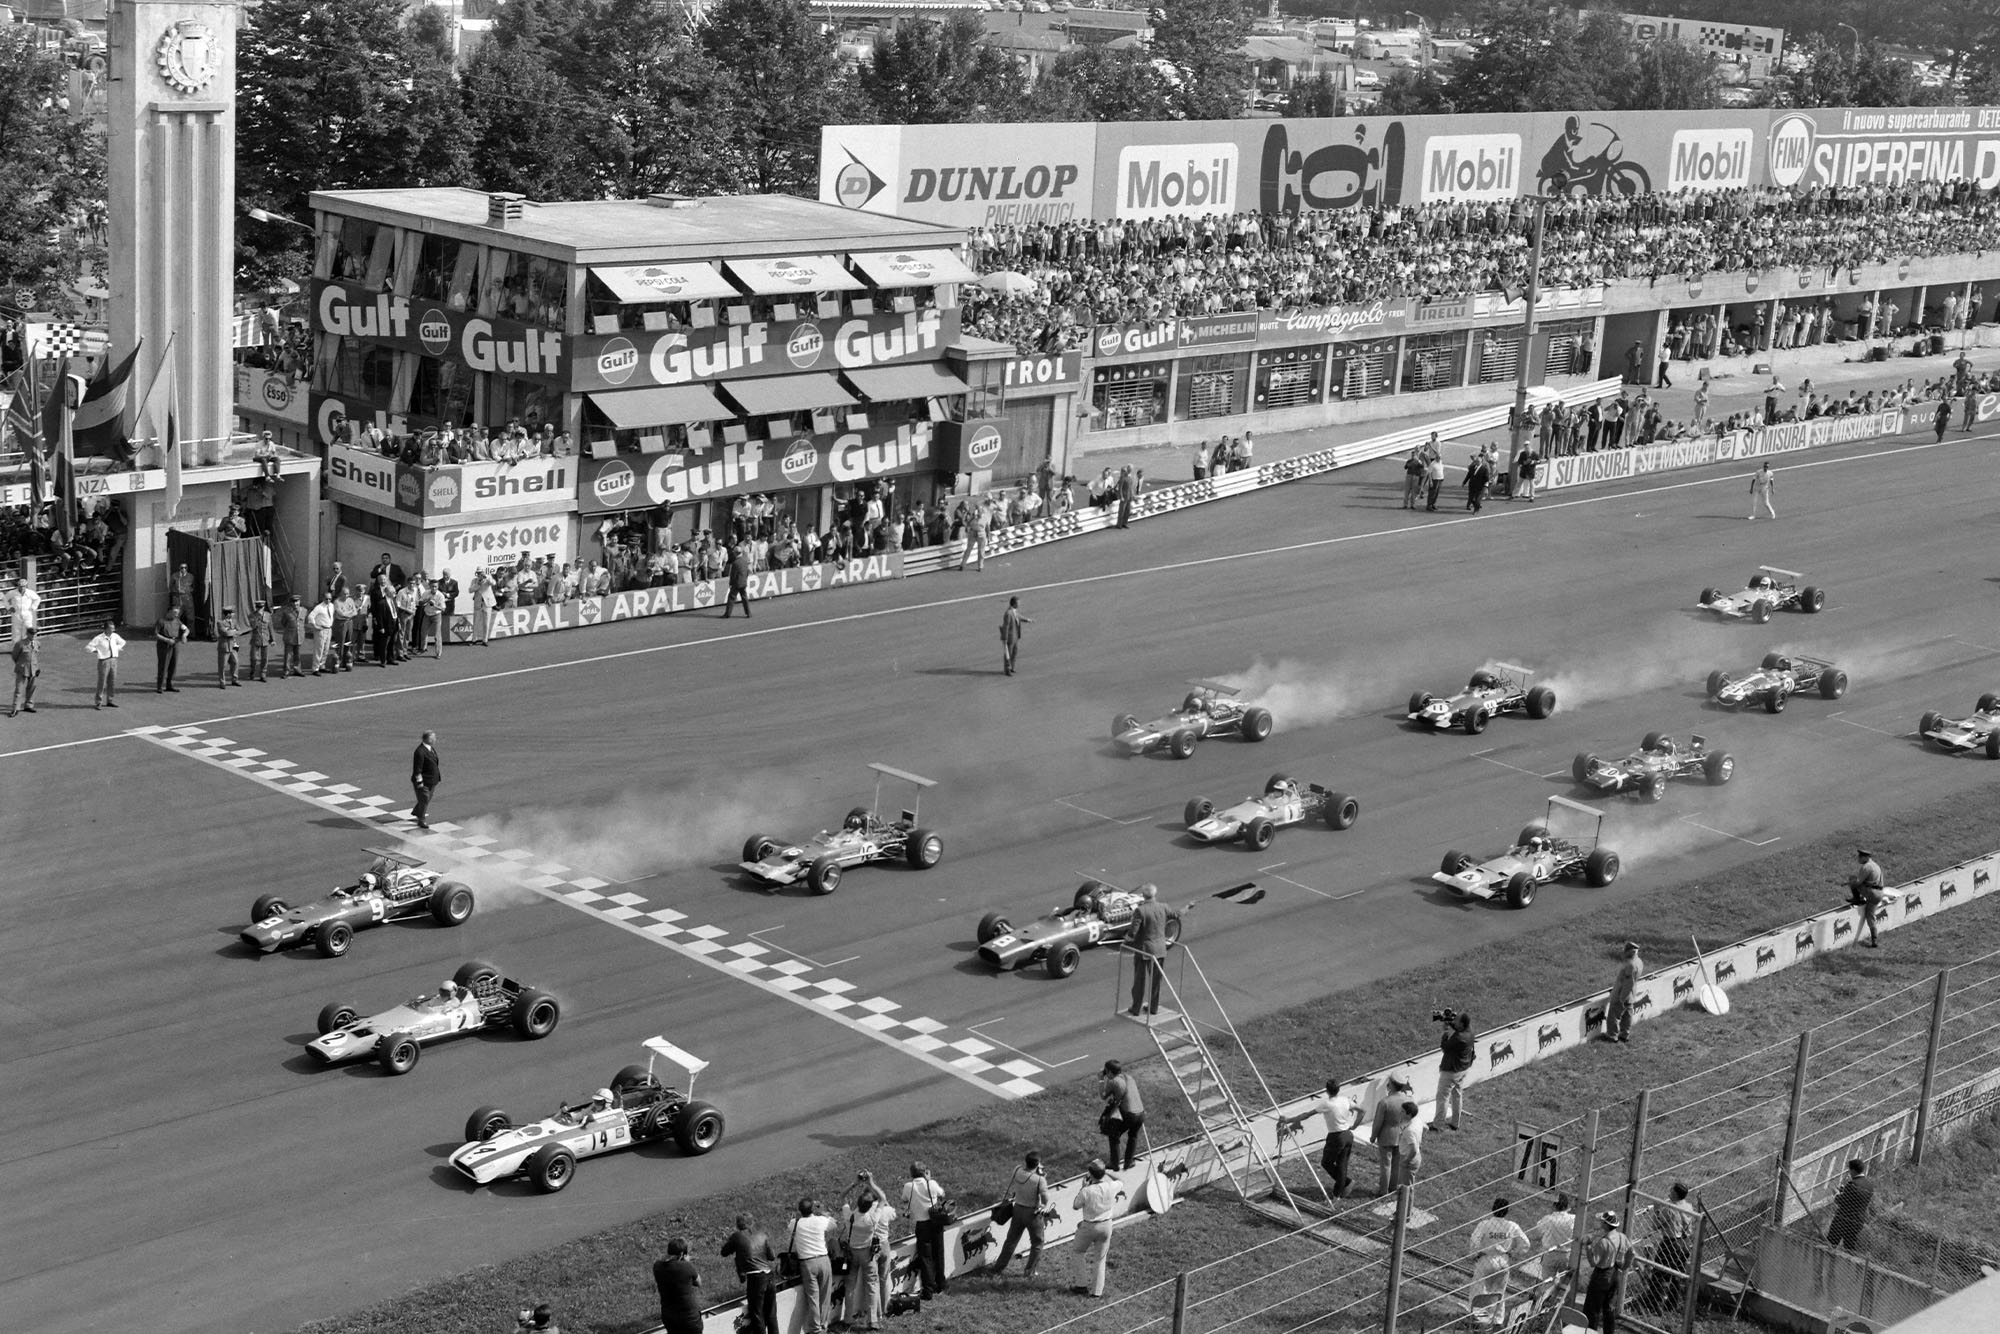 Cars pull away at the 1968 Italian Grand Prix